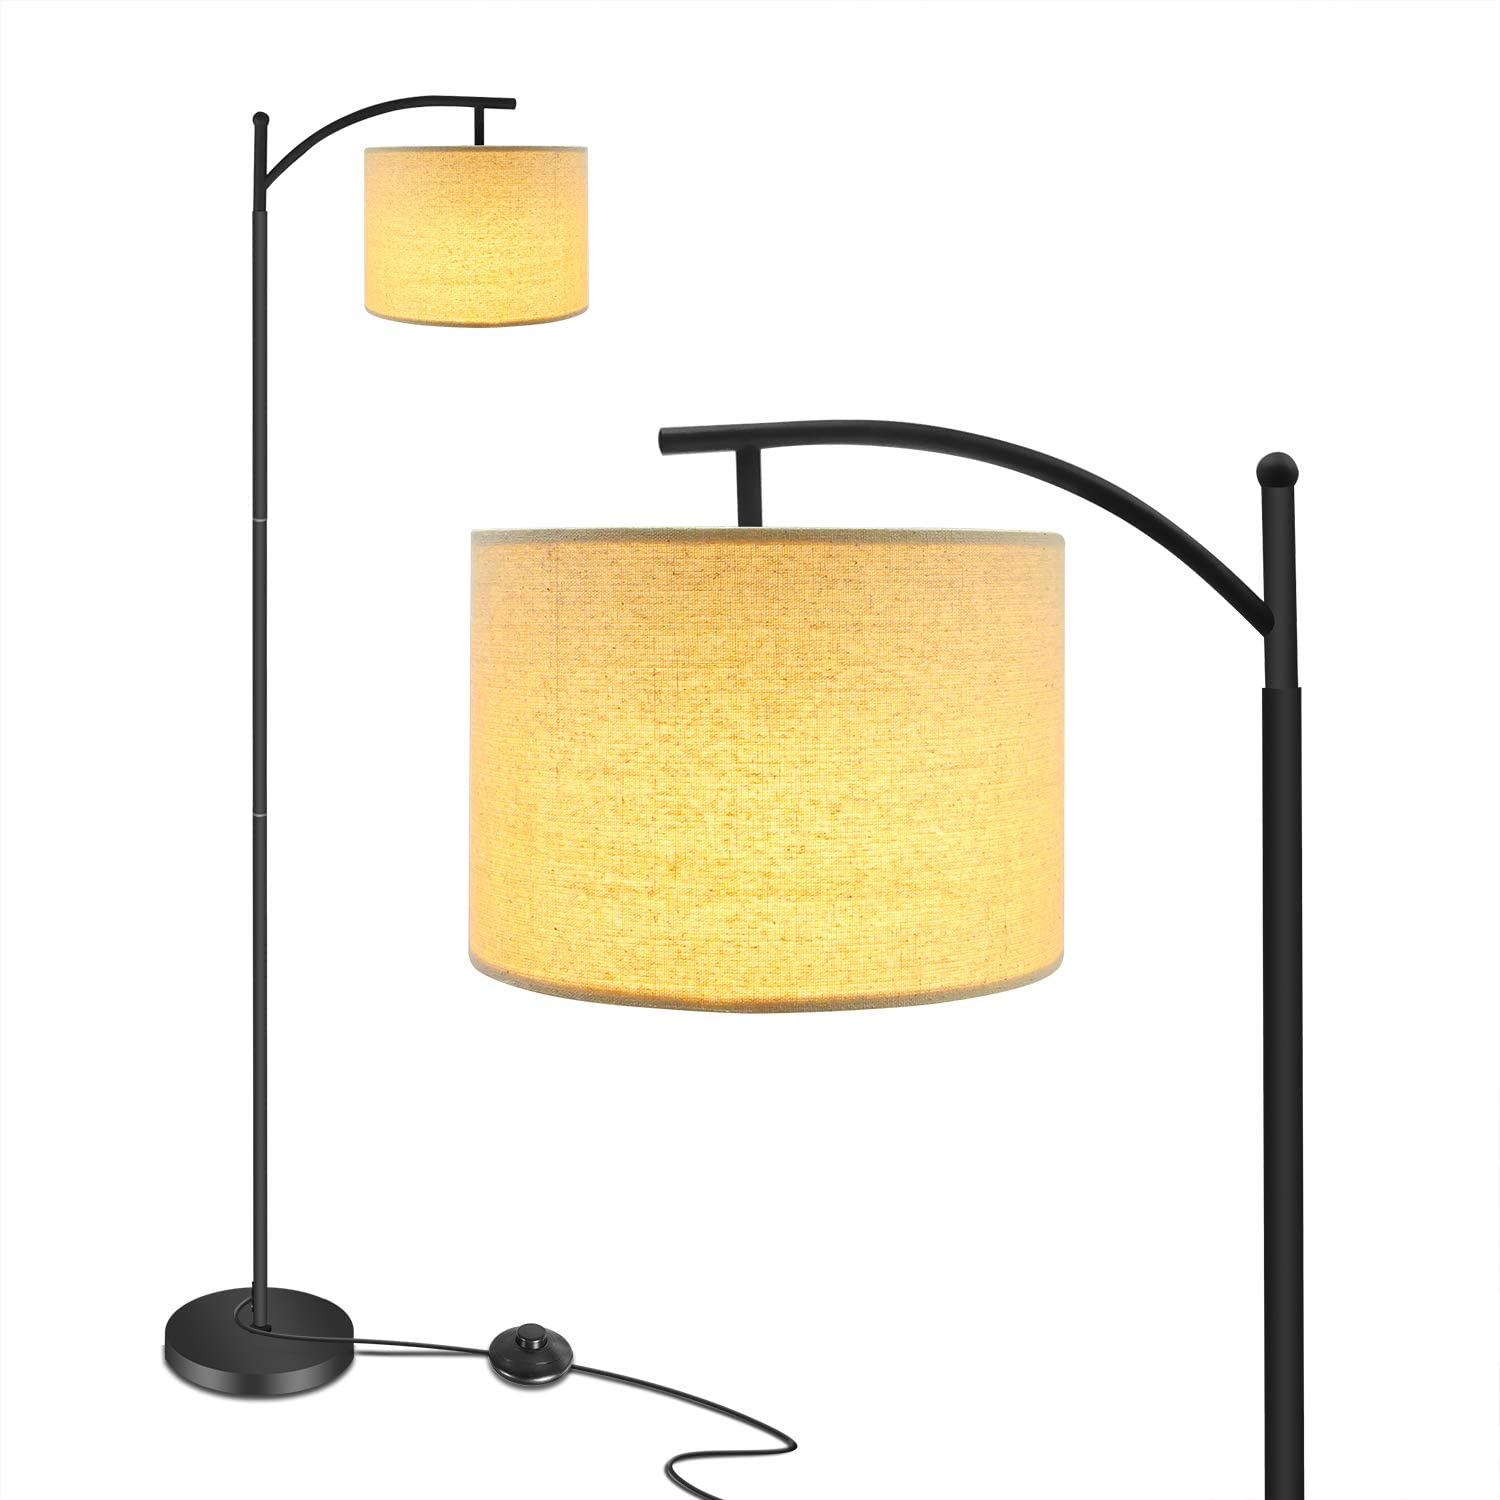 Floor Lamp Ambimall Limited Special Price Modern LED Room Stand for Max 83% OFF Living